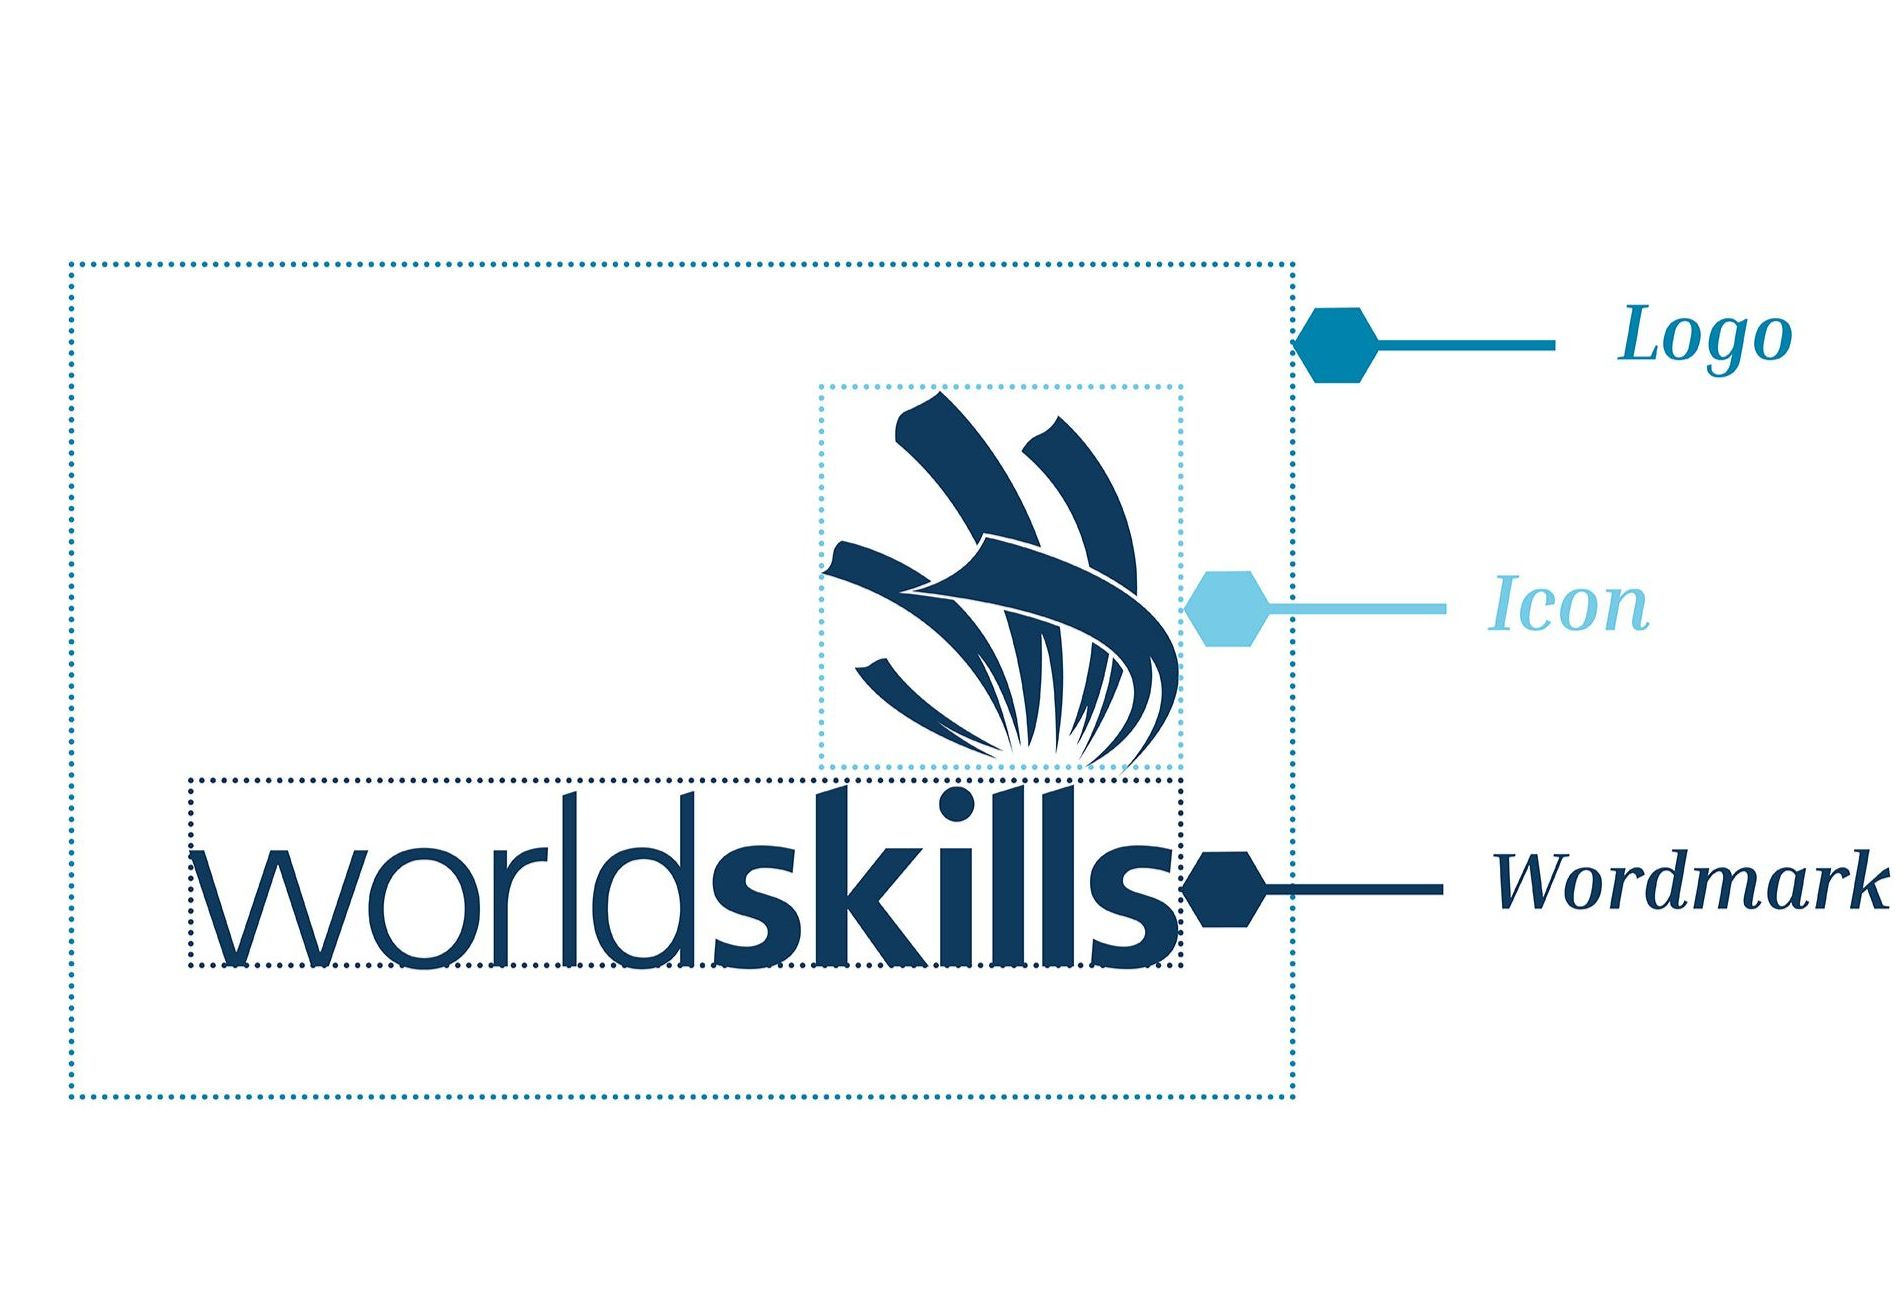 WorldSkills logo and wordmark